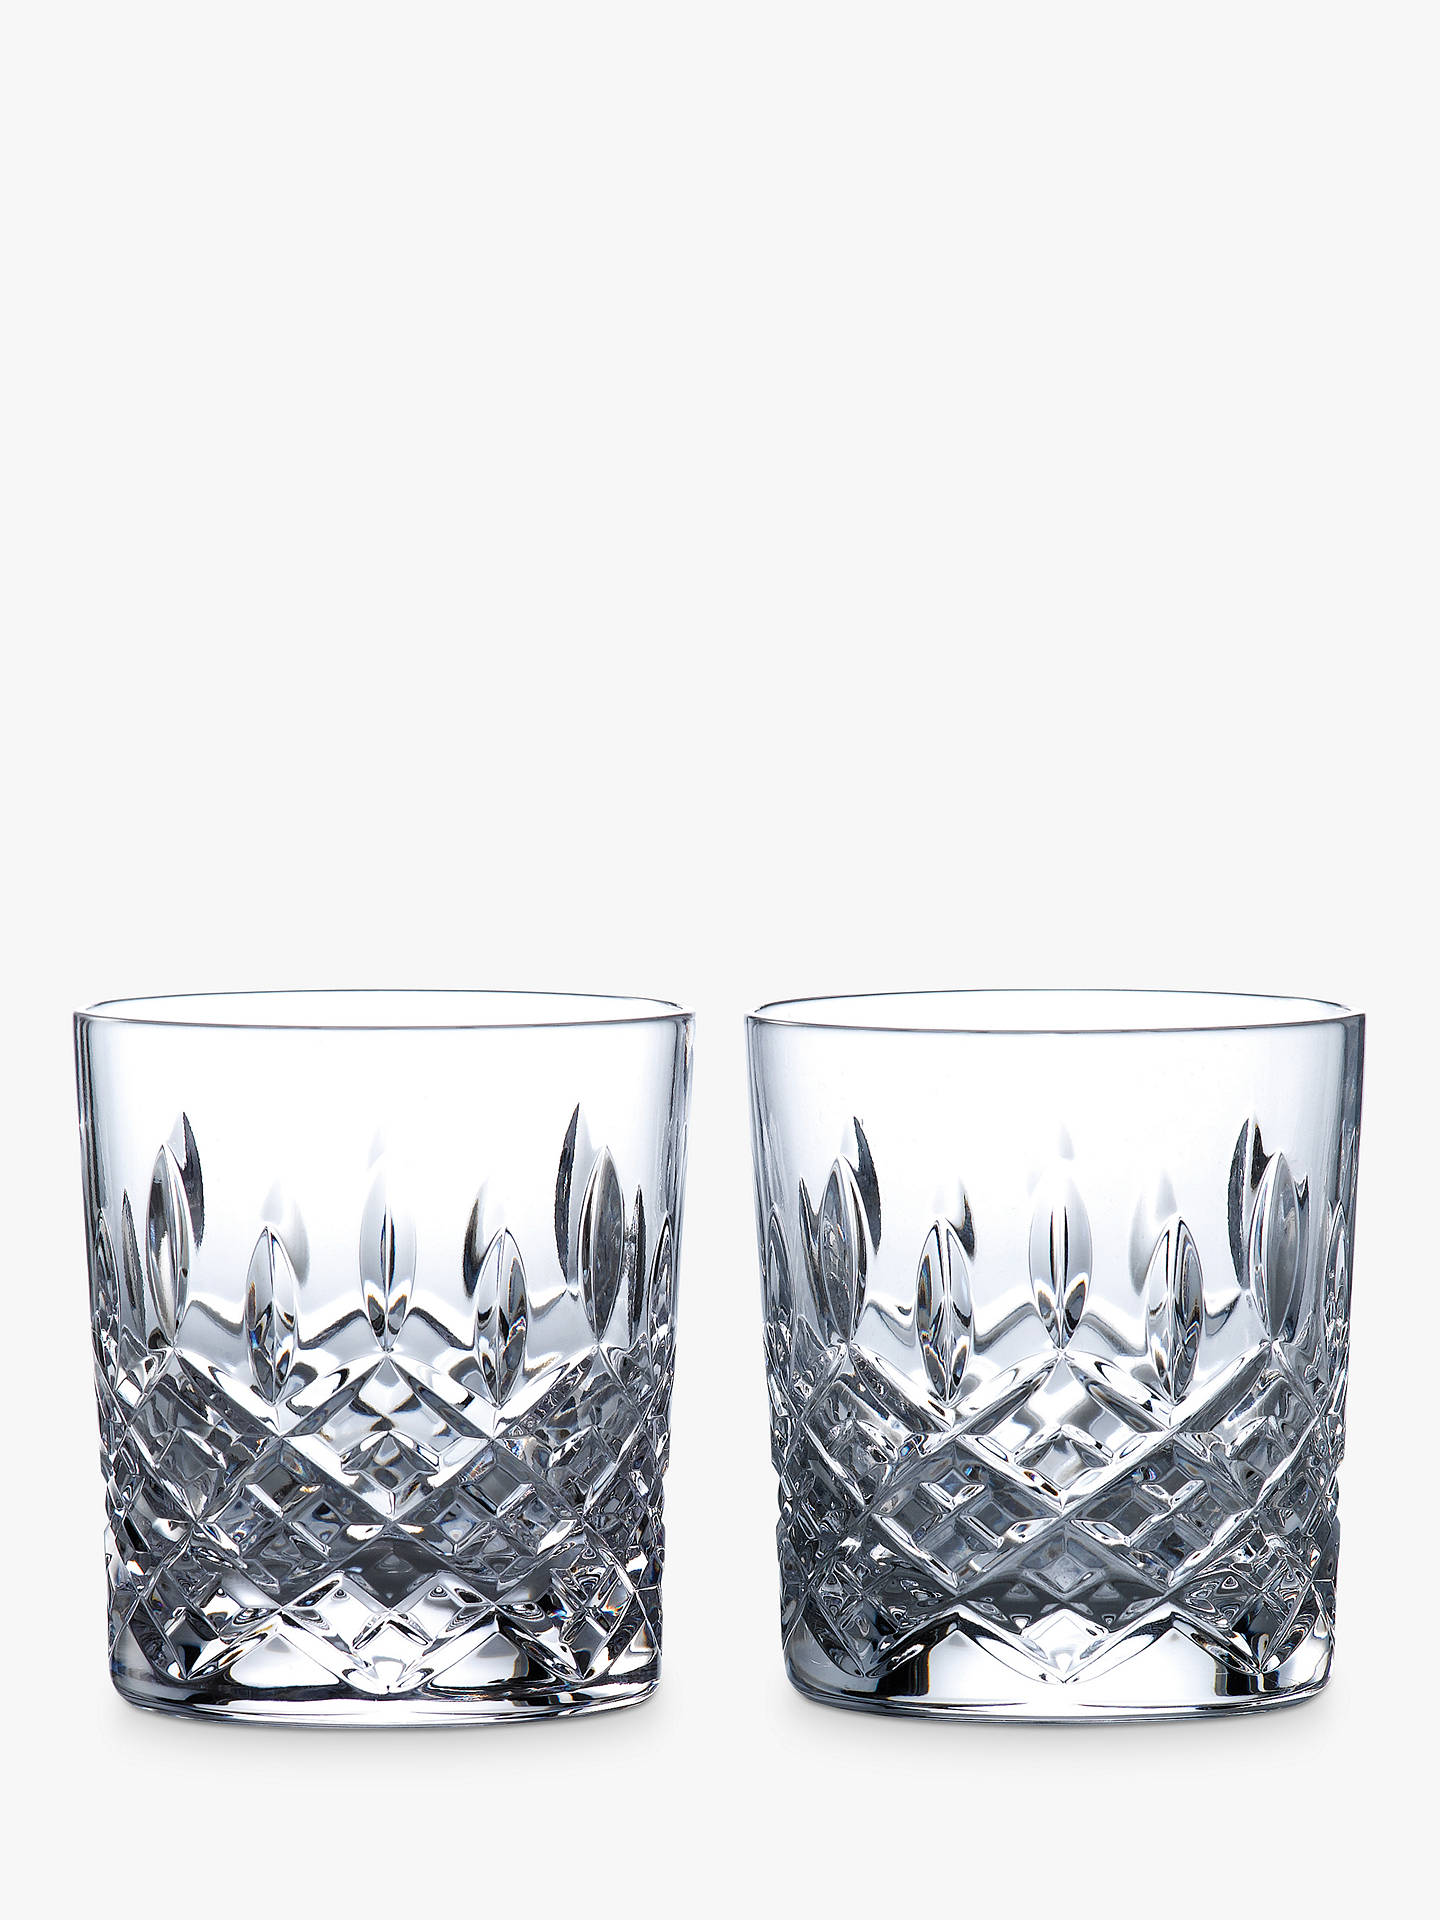 BuyRoyal Doulton R&D Collection Highclere Crystal Cut Tumblers, 290ml, Set of 2 Online at johnlewis.com